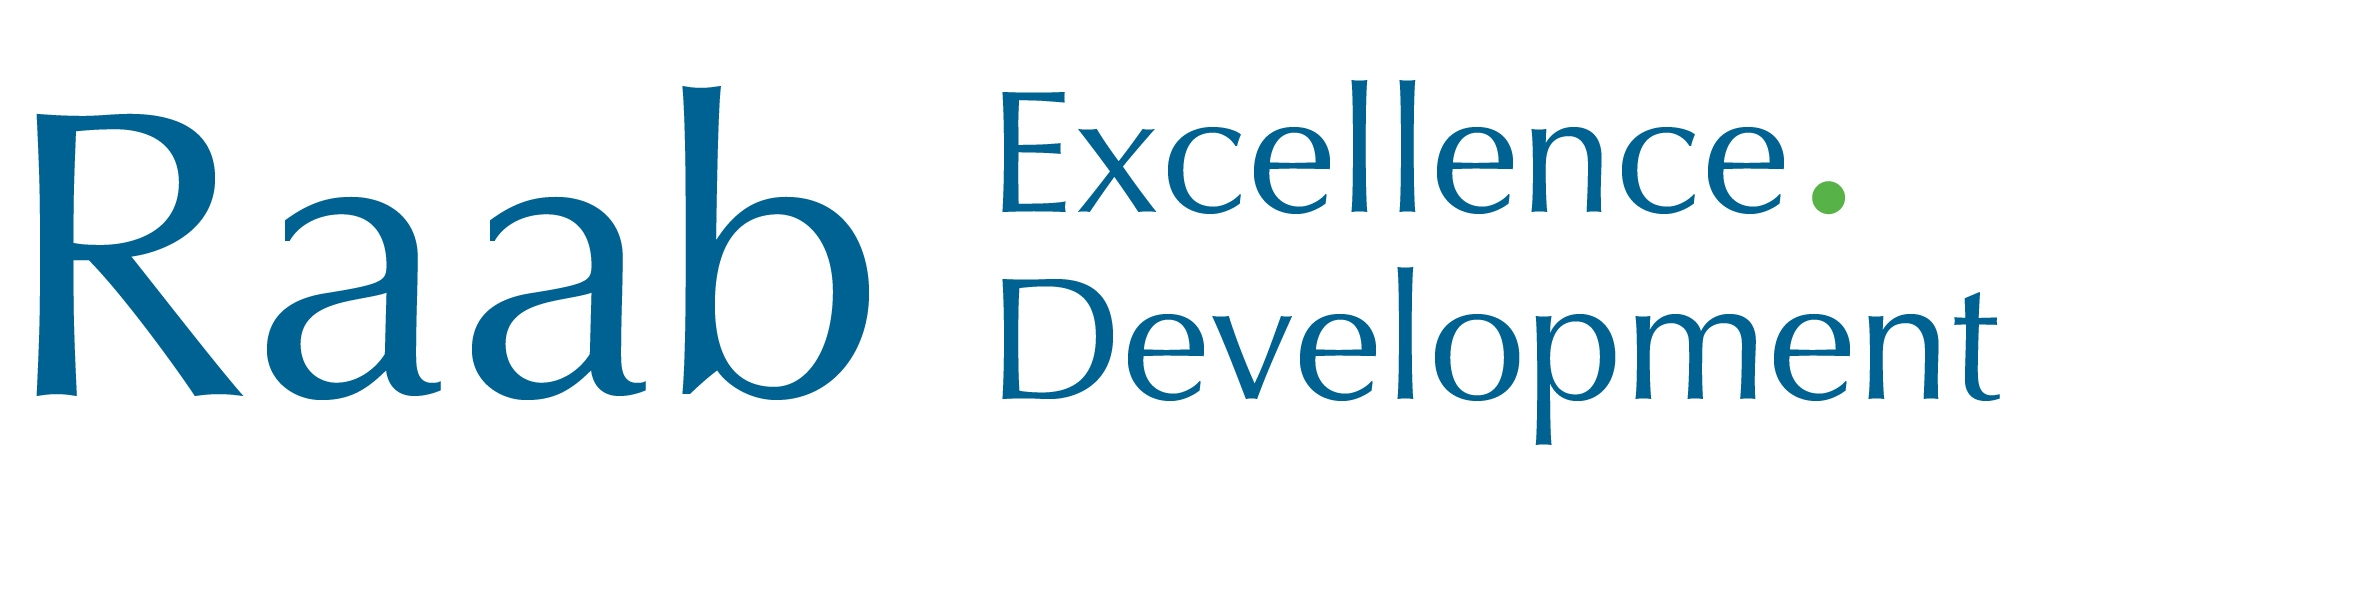 Andrea Raab Excellence Development